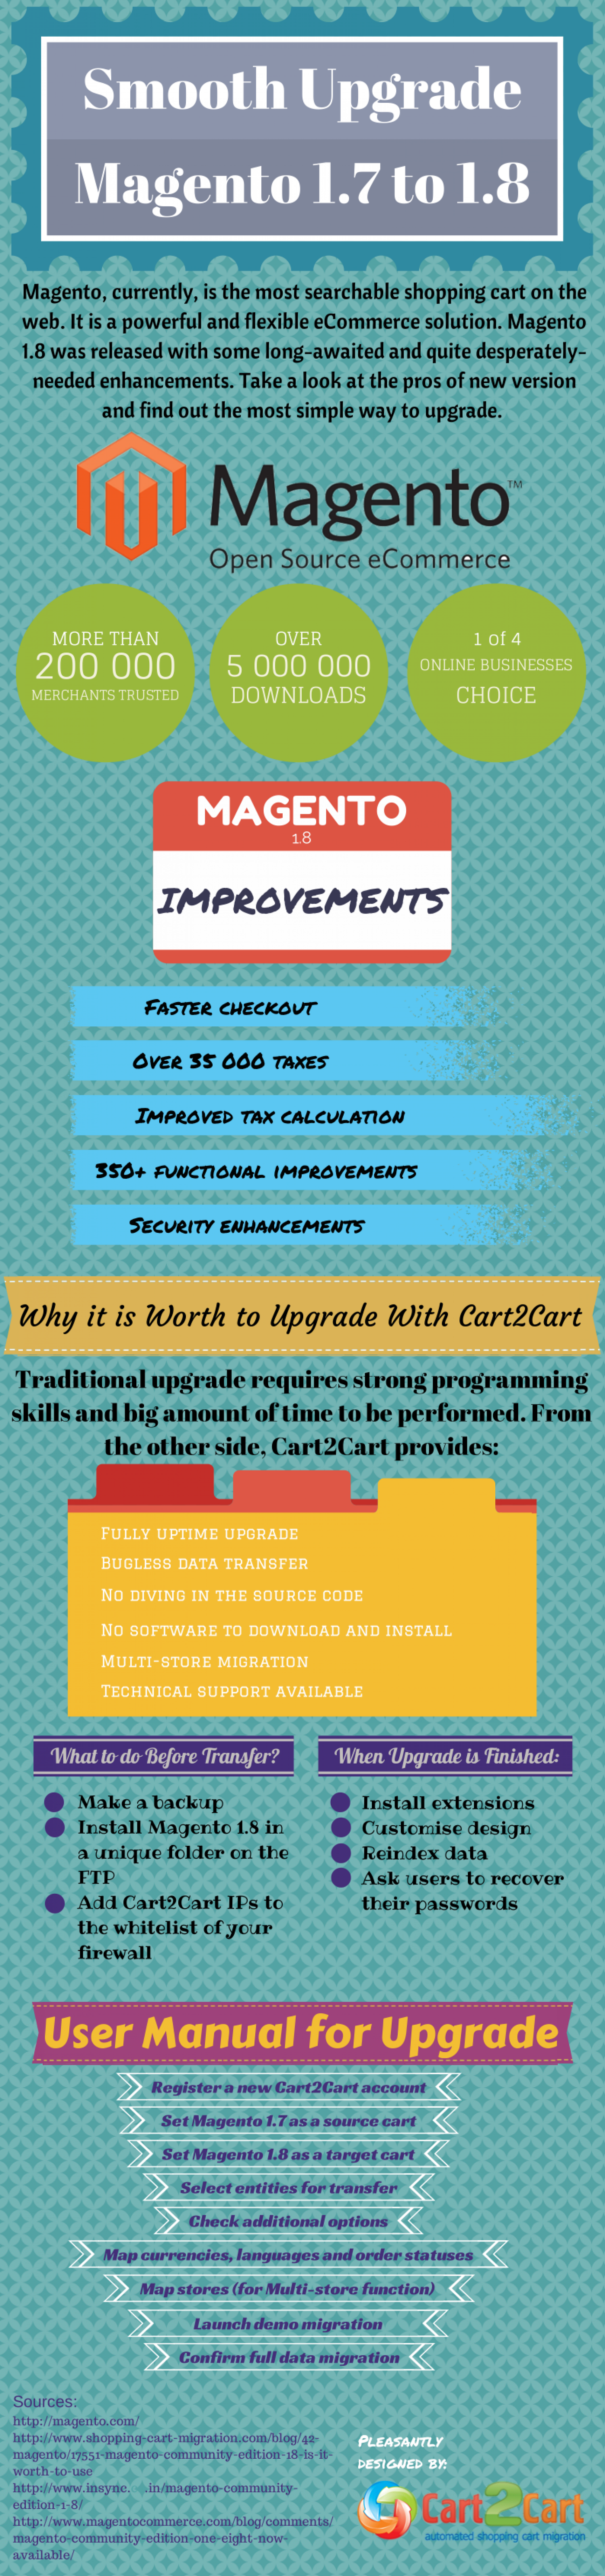 Smooth Upgrade Magento 1.7 to 1.8 Infographic